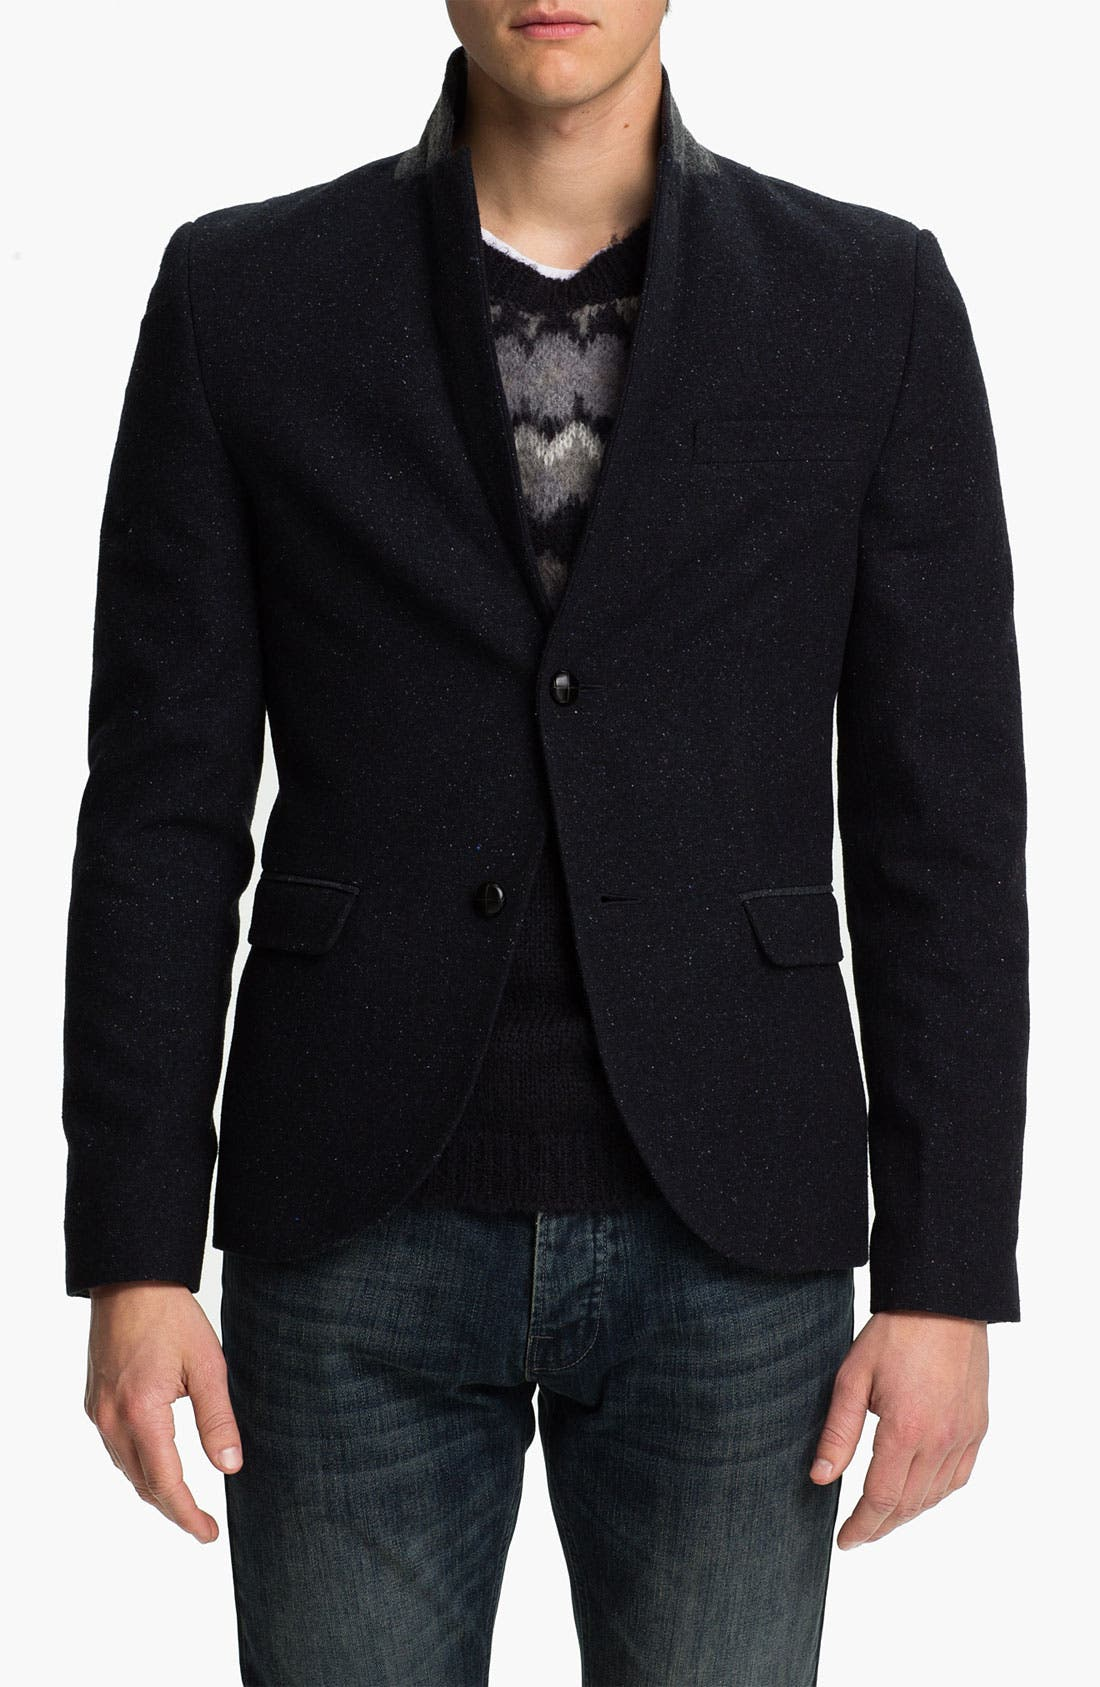 Alternate Image 1 Selected - Topman Fleck Skinny Fit Blazer